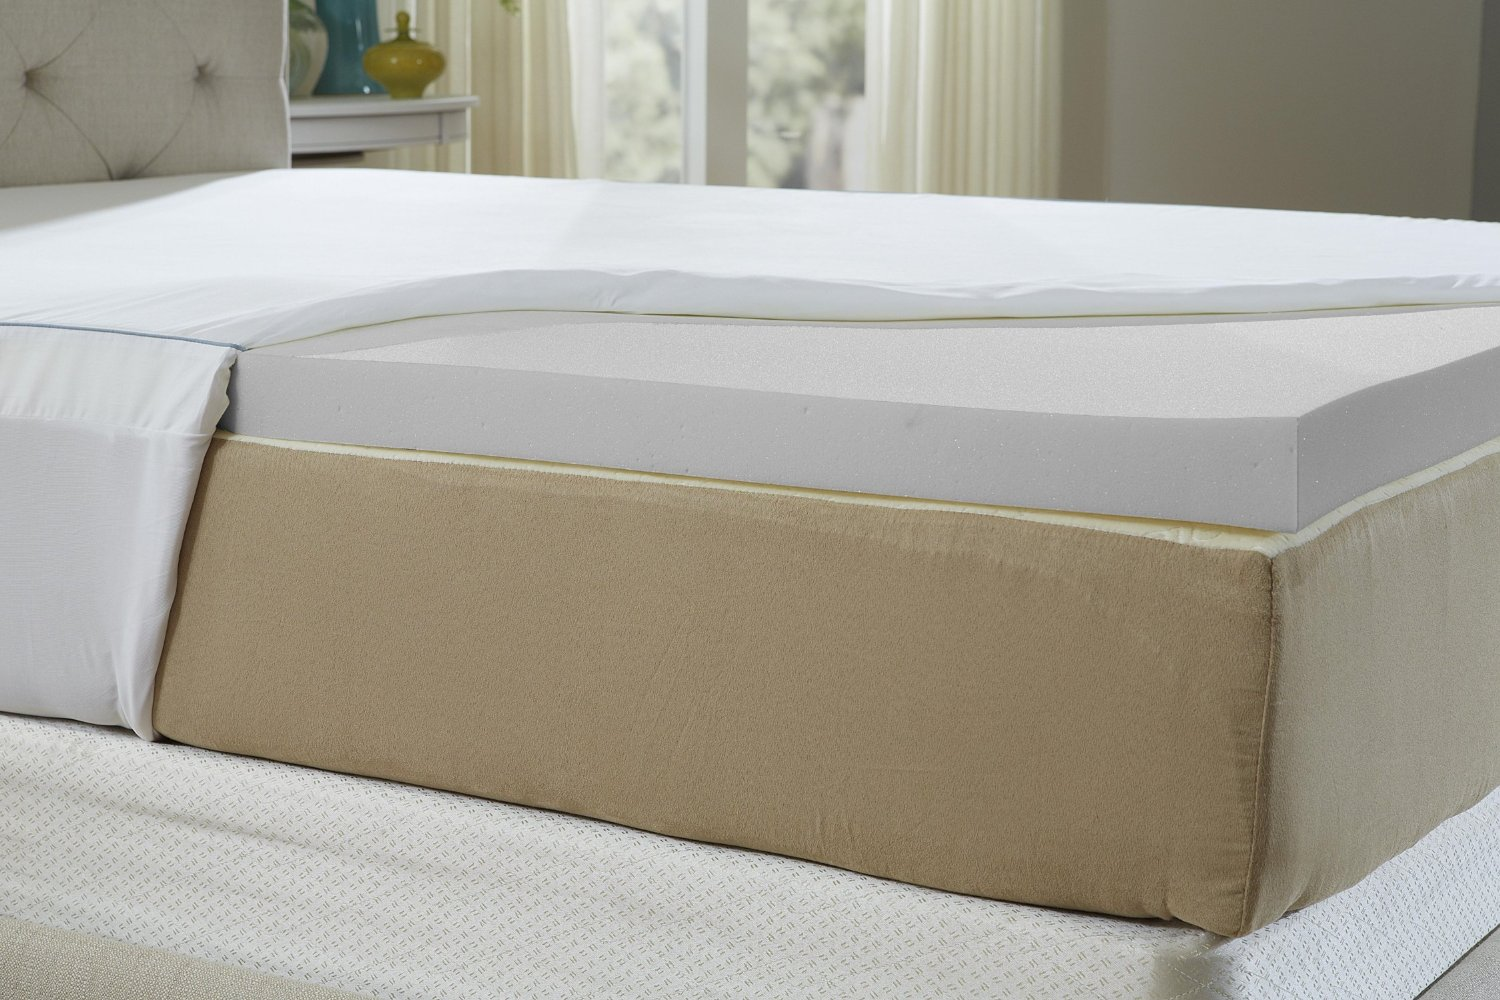 Natures Sleep Cool IQ Twin Extra-Long Size 2.5 Inch Thick, 4.5 Pound Density Memory Foam Mattress Topper with 18 Inch Fitted Cotton Cover